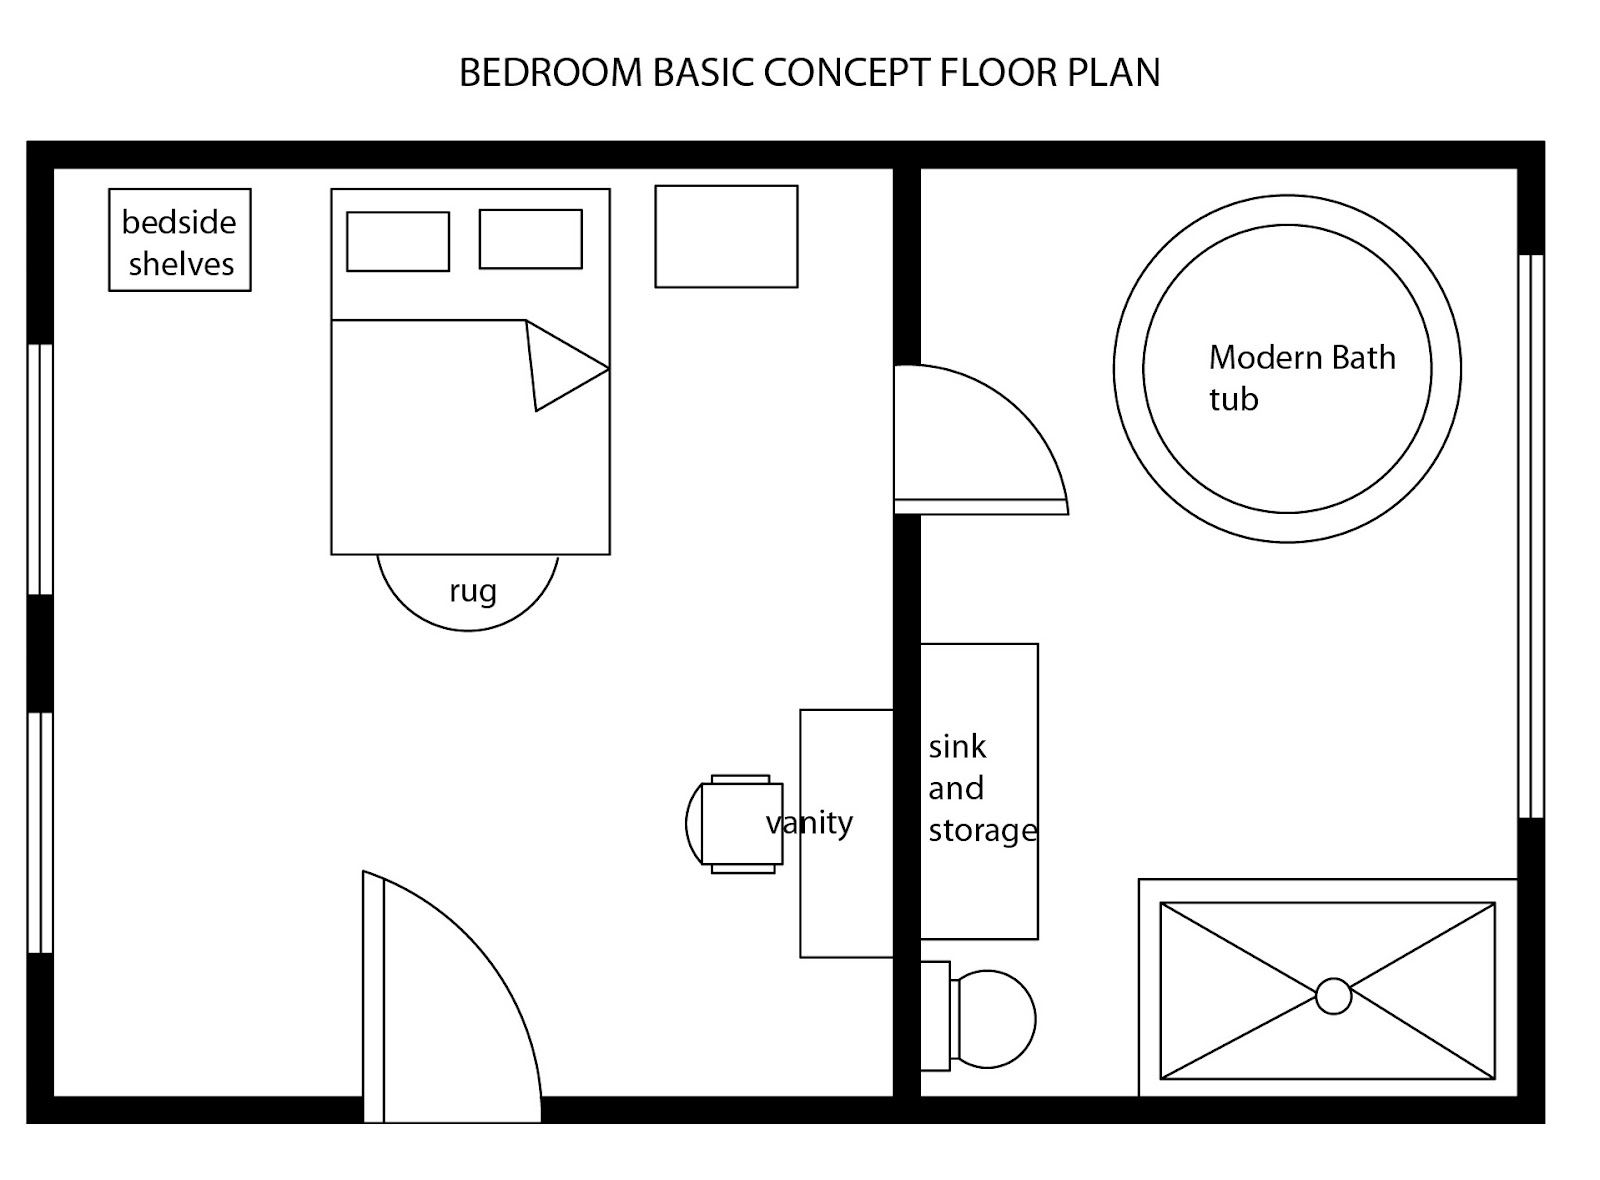 Interior design decor modern bedroom basic floor plan for Basic home floor plans